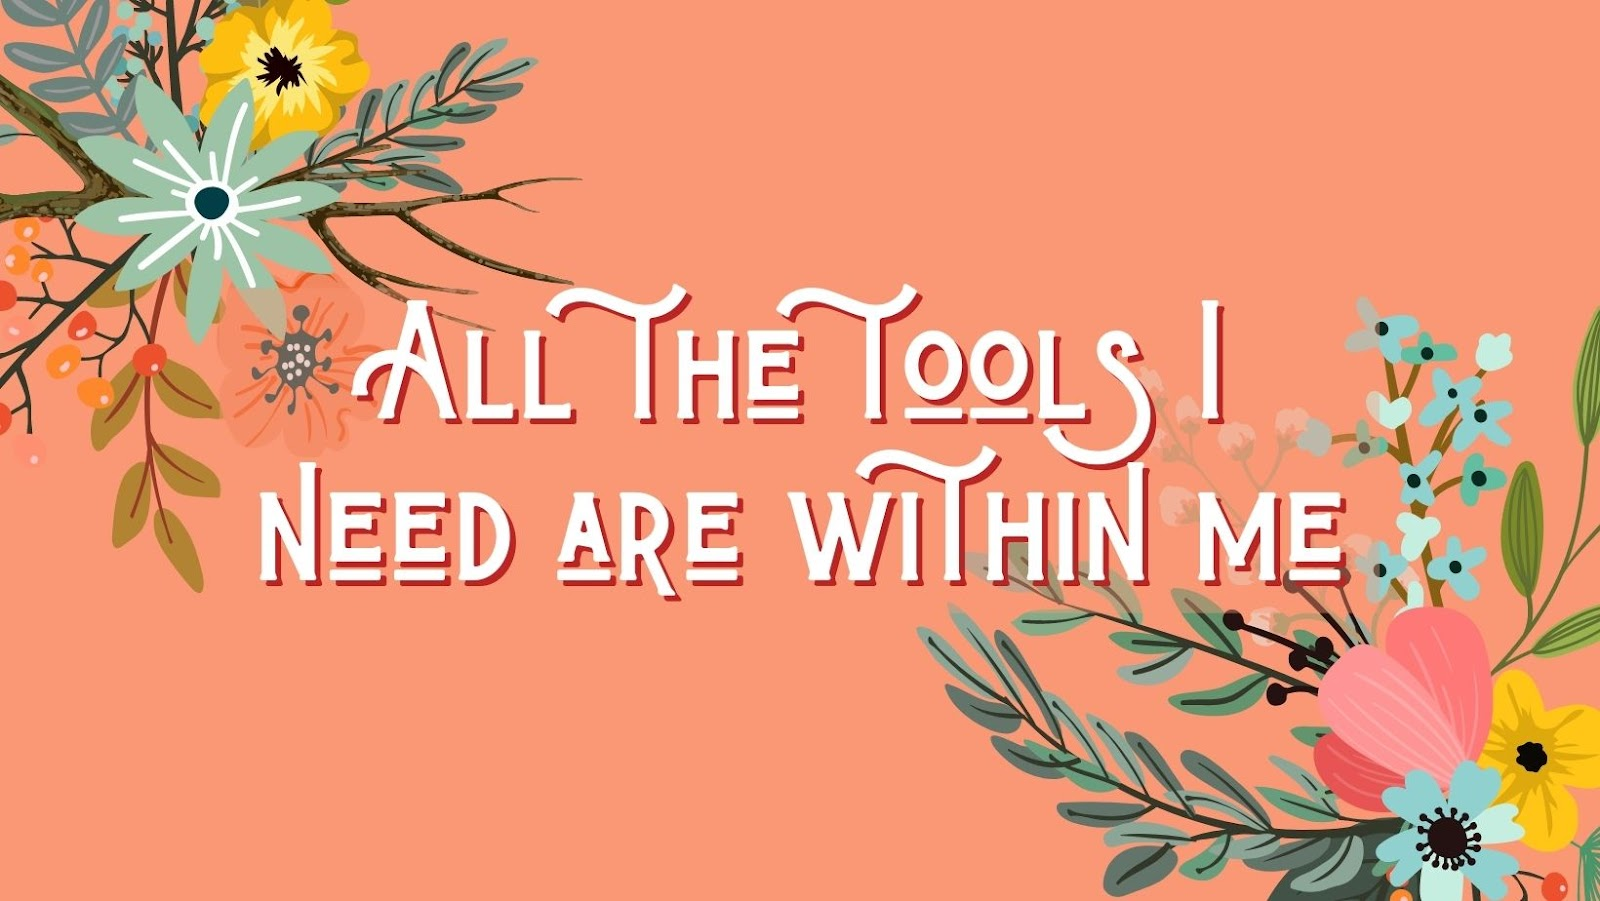 confidence affirmation: all the tools I need are within me.